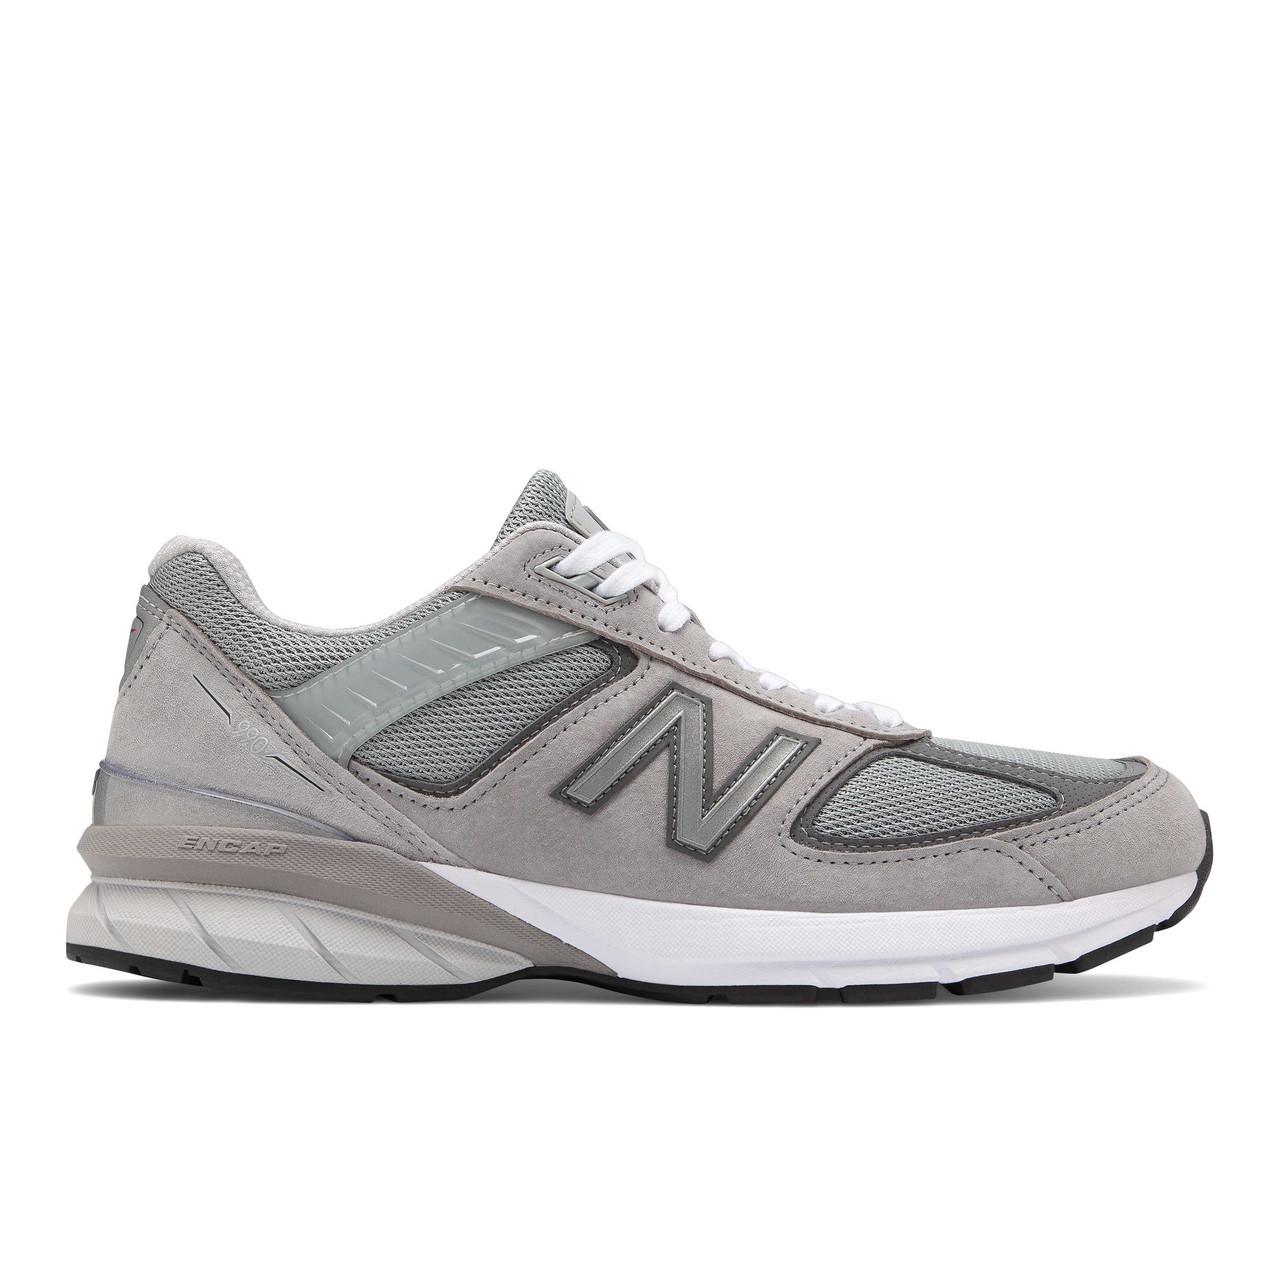 wholesale dealer 8eca2 f9e37 New Balance Men's M990 Version 5 in Gray. Premium Motion Control Running  Shoe in Widths AA to 4E. Made in USA!